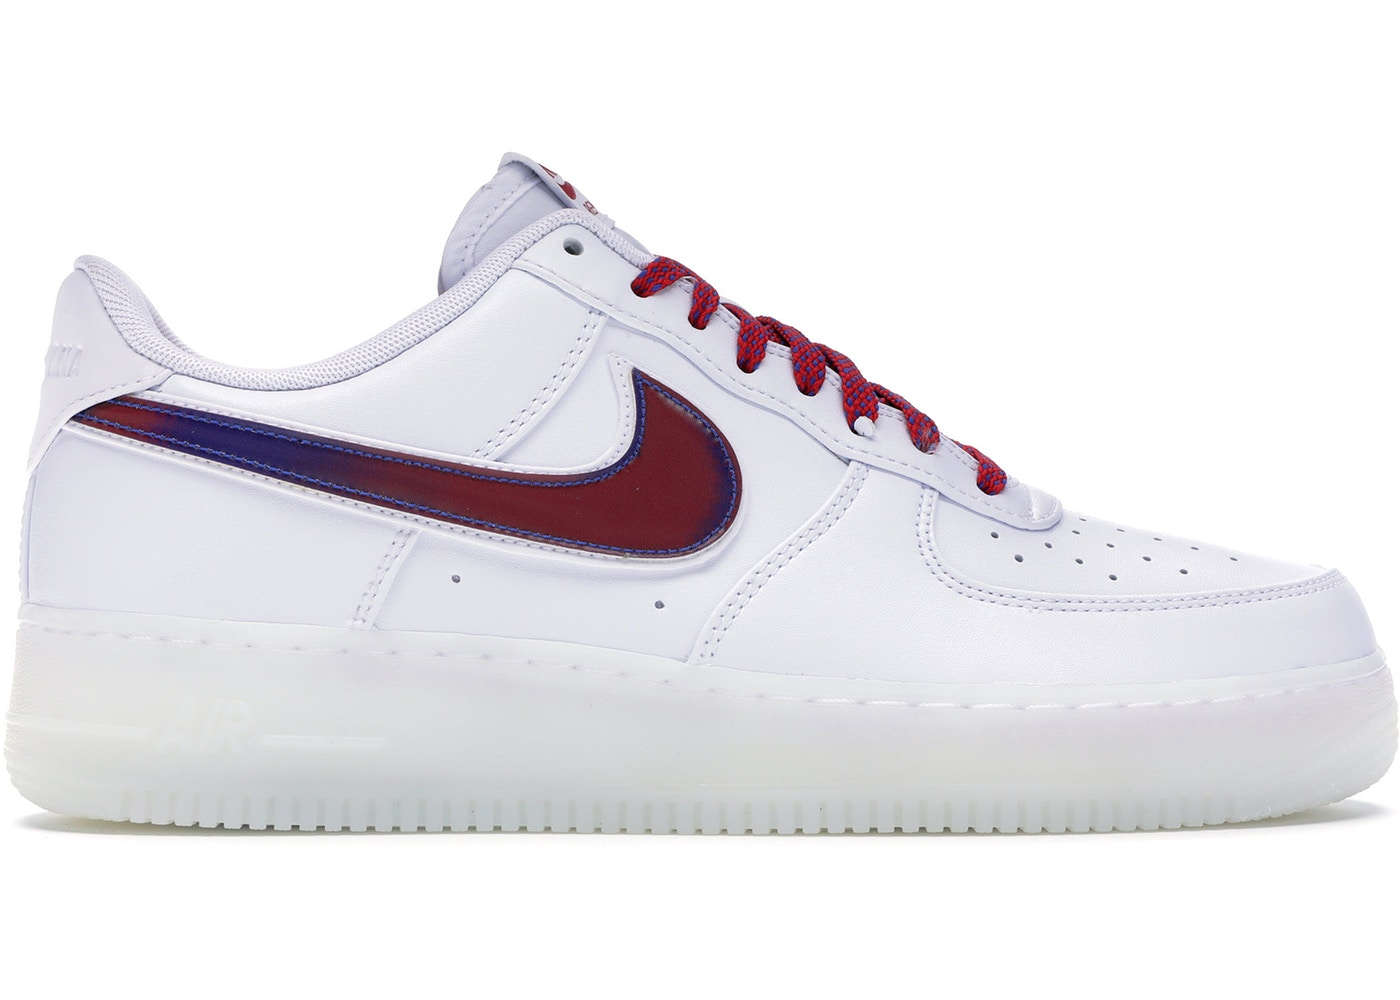 cheaper 71bab bbd47 Air Force 1 Low De Lo Mio - BQ8448-100